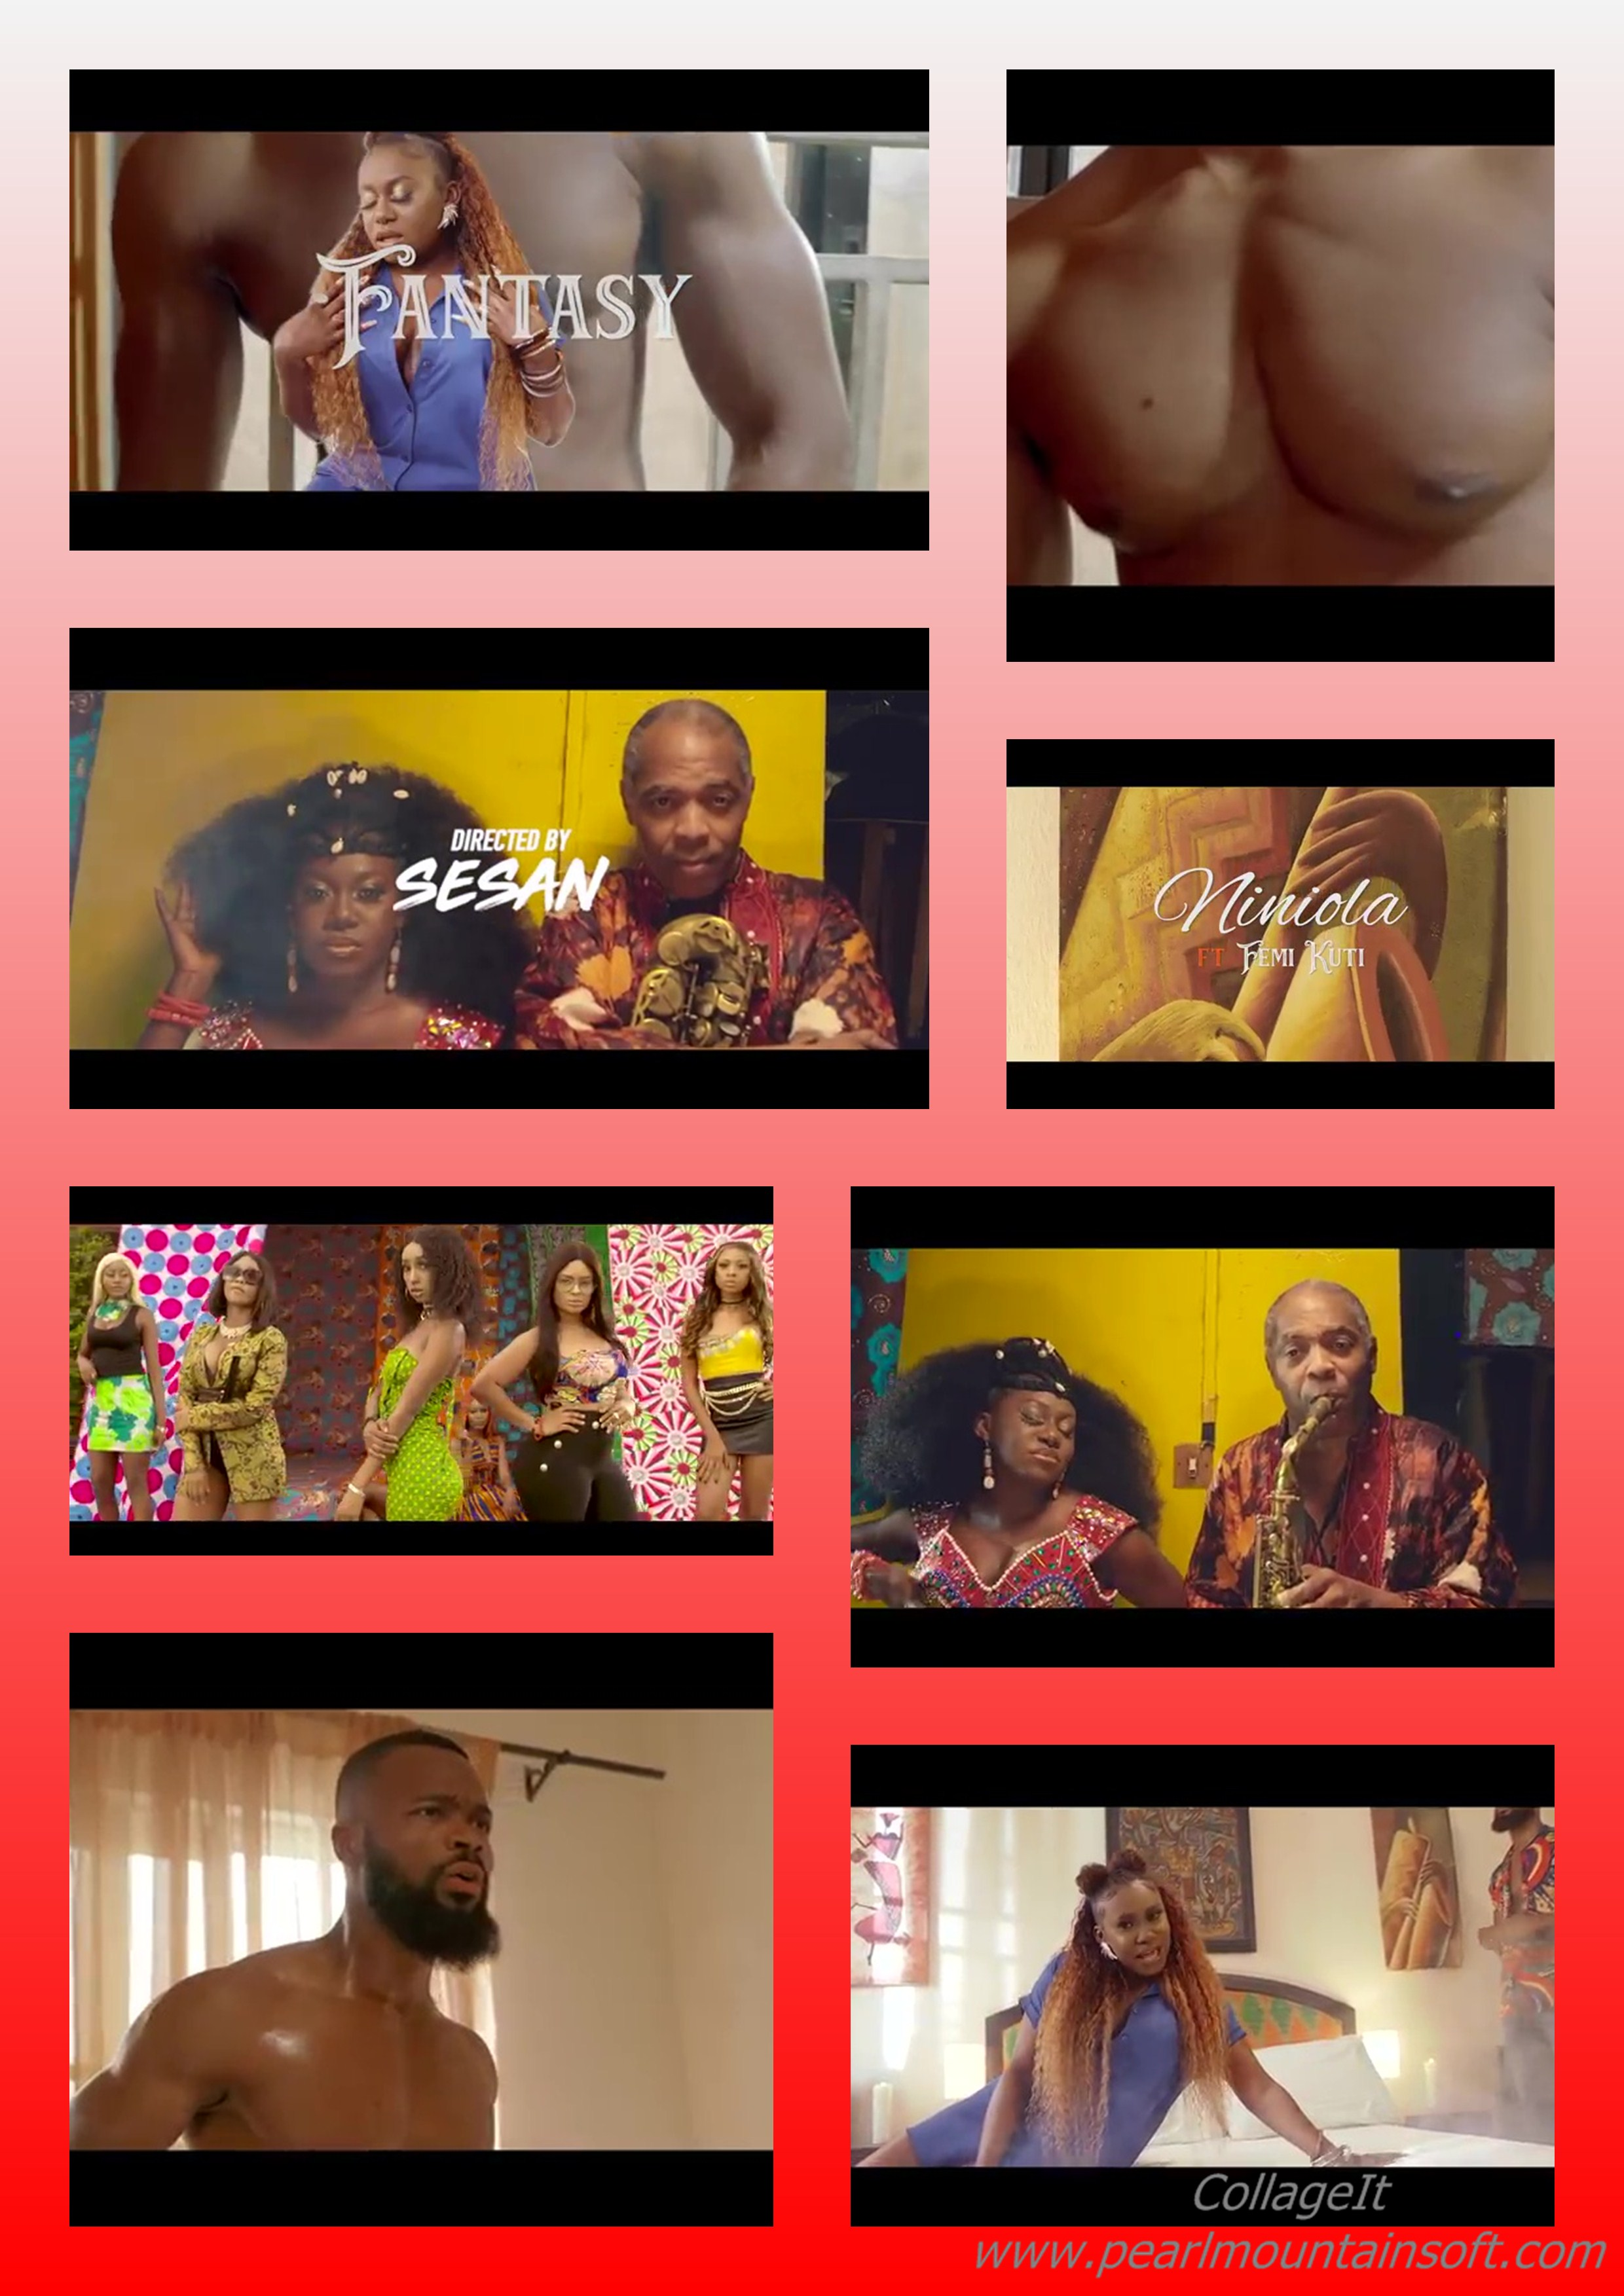 """(+LYRICS+MEANING+TRANSLATION) MUSIC REVIEW- FANTASY BY NINIOLA FT FEMI KUTI """"HERE IS THE MEANING OF THIS SONG"""" +WHAT YOU DON'T KNOW ABOUT THIS SONG!"""